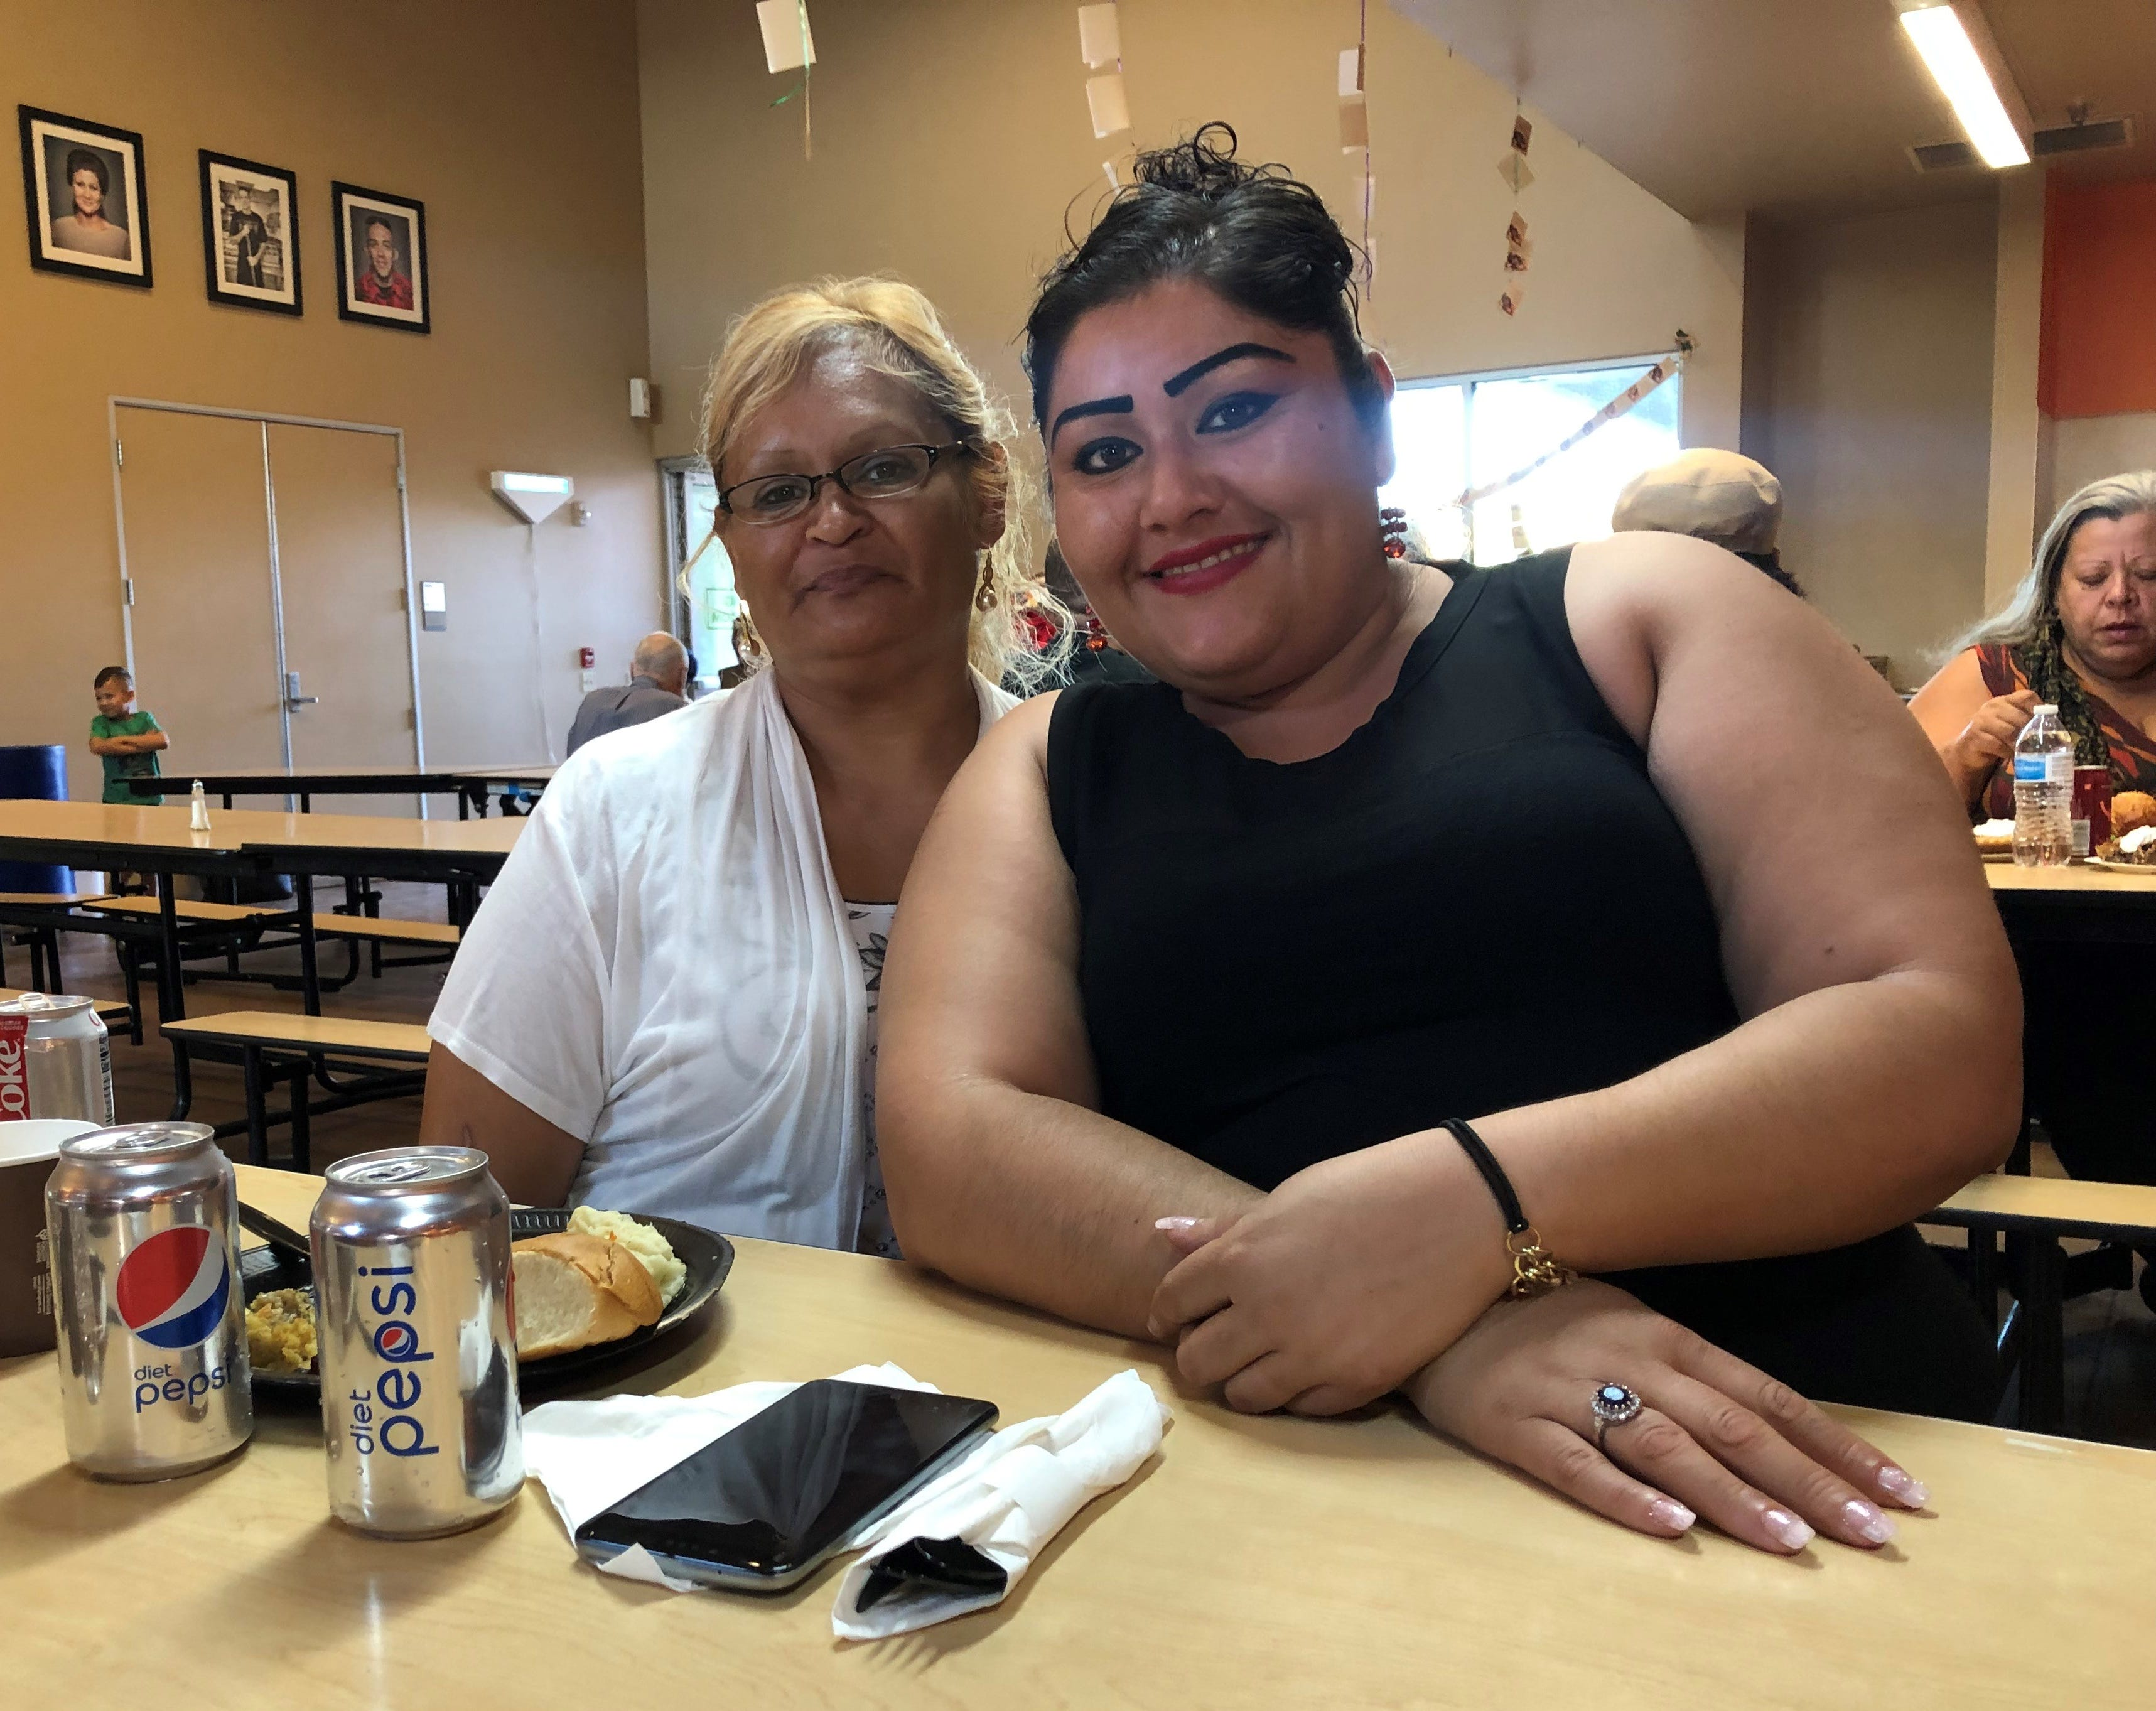 Leticia Torres, 49, and Maricela Anguiano, 31, are residents and friends at the Coachella Valley Rescue Mission in Indio. On Thursday, they celebrated Thanksgiving together at the mission. Ricardo Lopez/ The Desert Sun